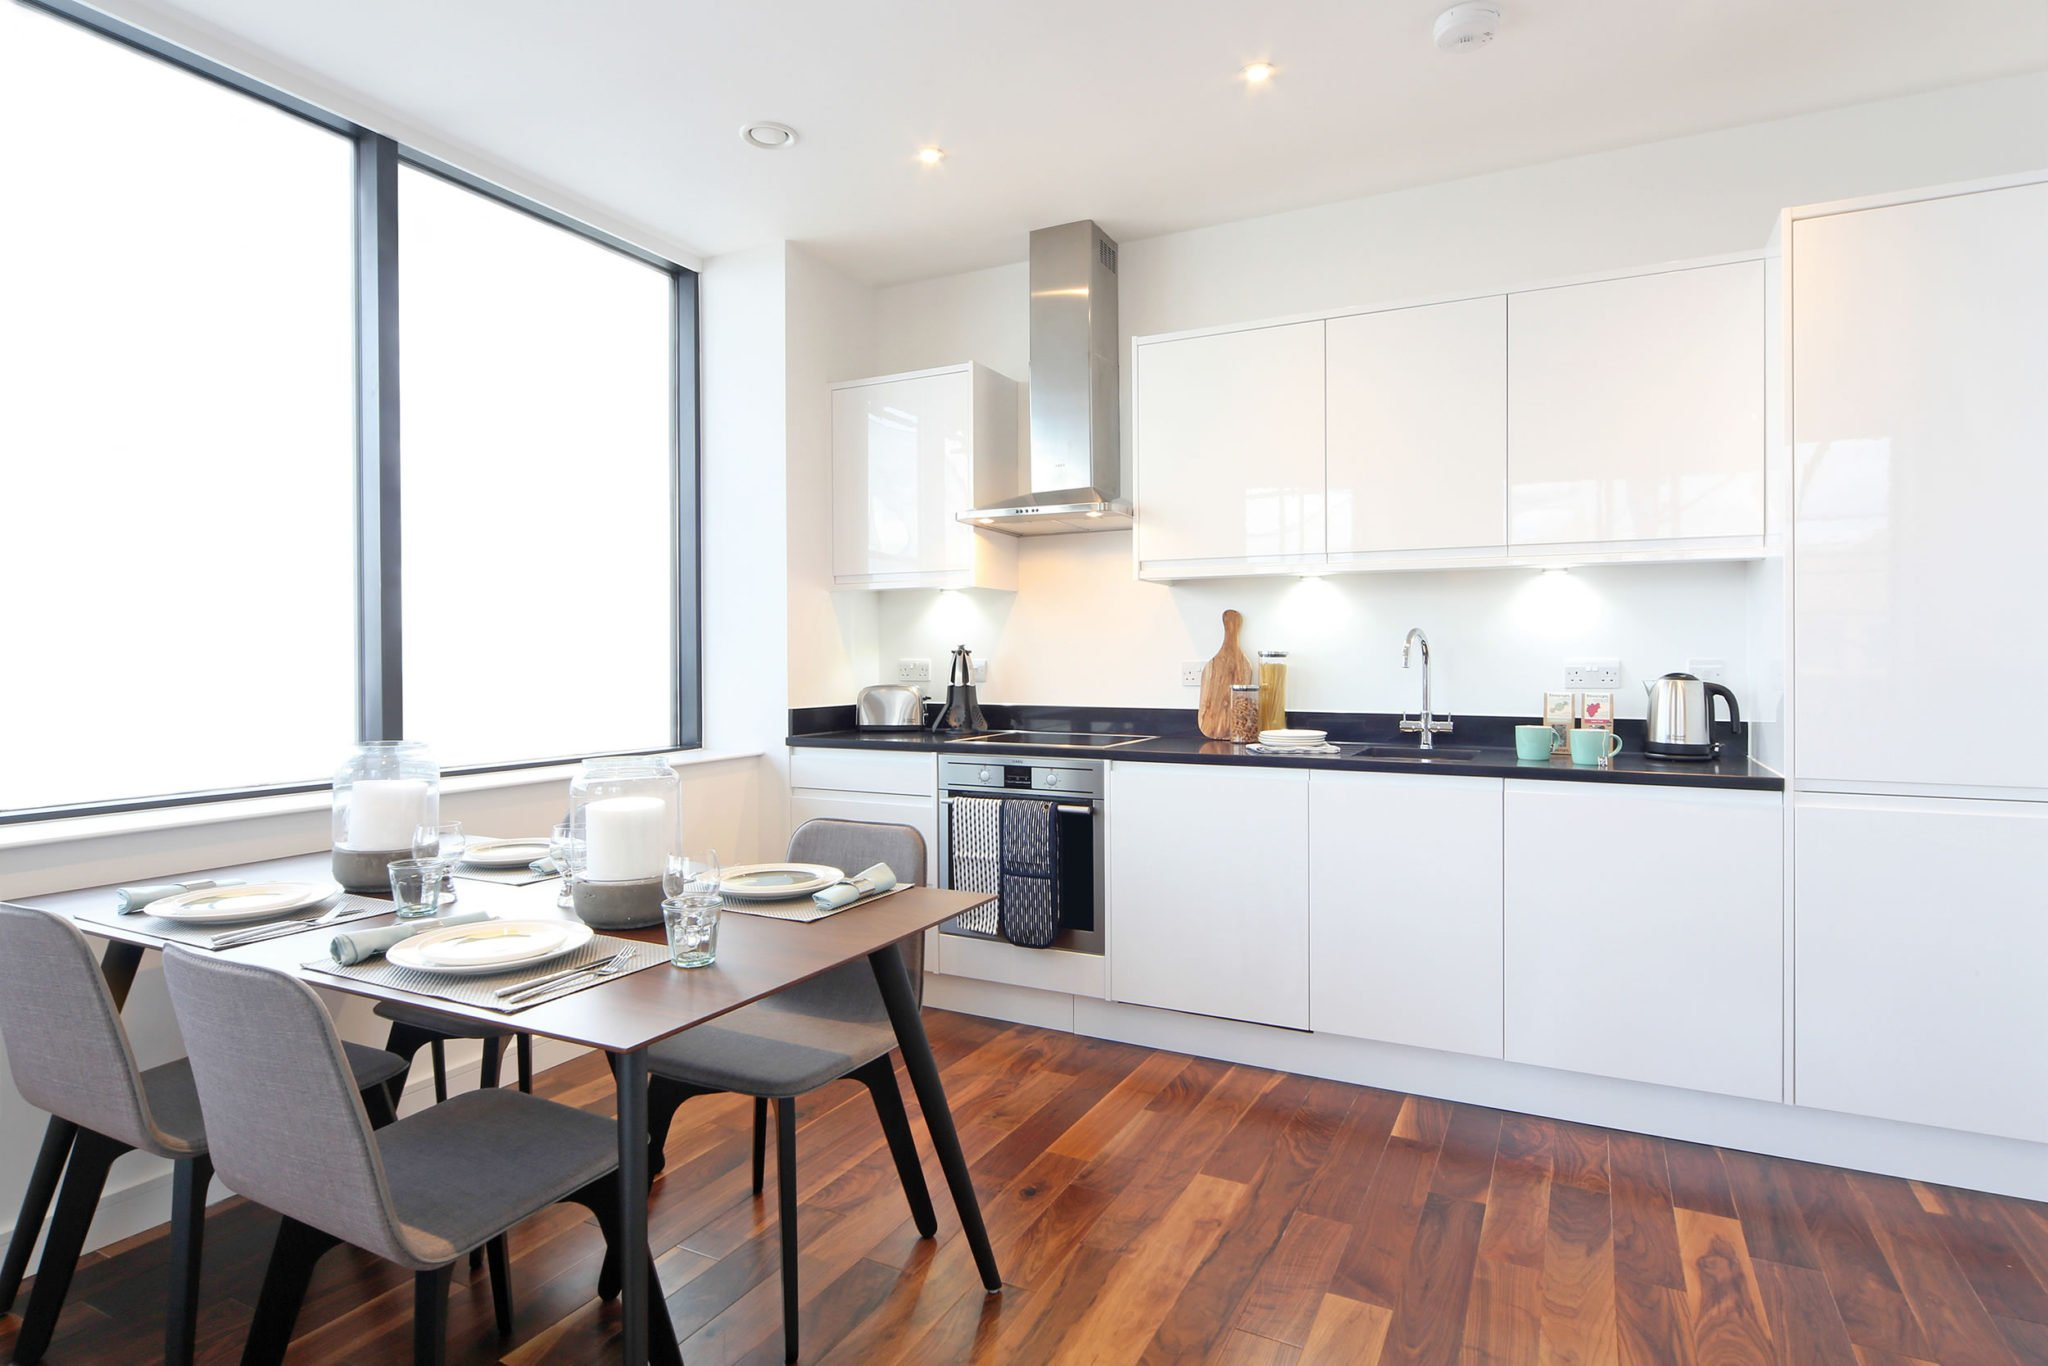 Looking-for-modern-affordable-apartments-in-Harrow?-Why-not-book-our-Harrow-Serviced-Apartments-College-Road-today-for-great-rates.